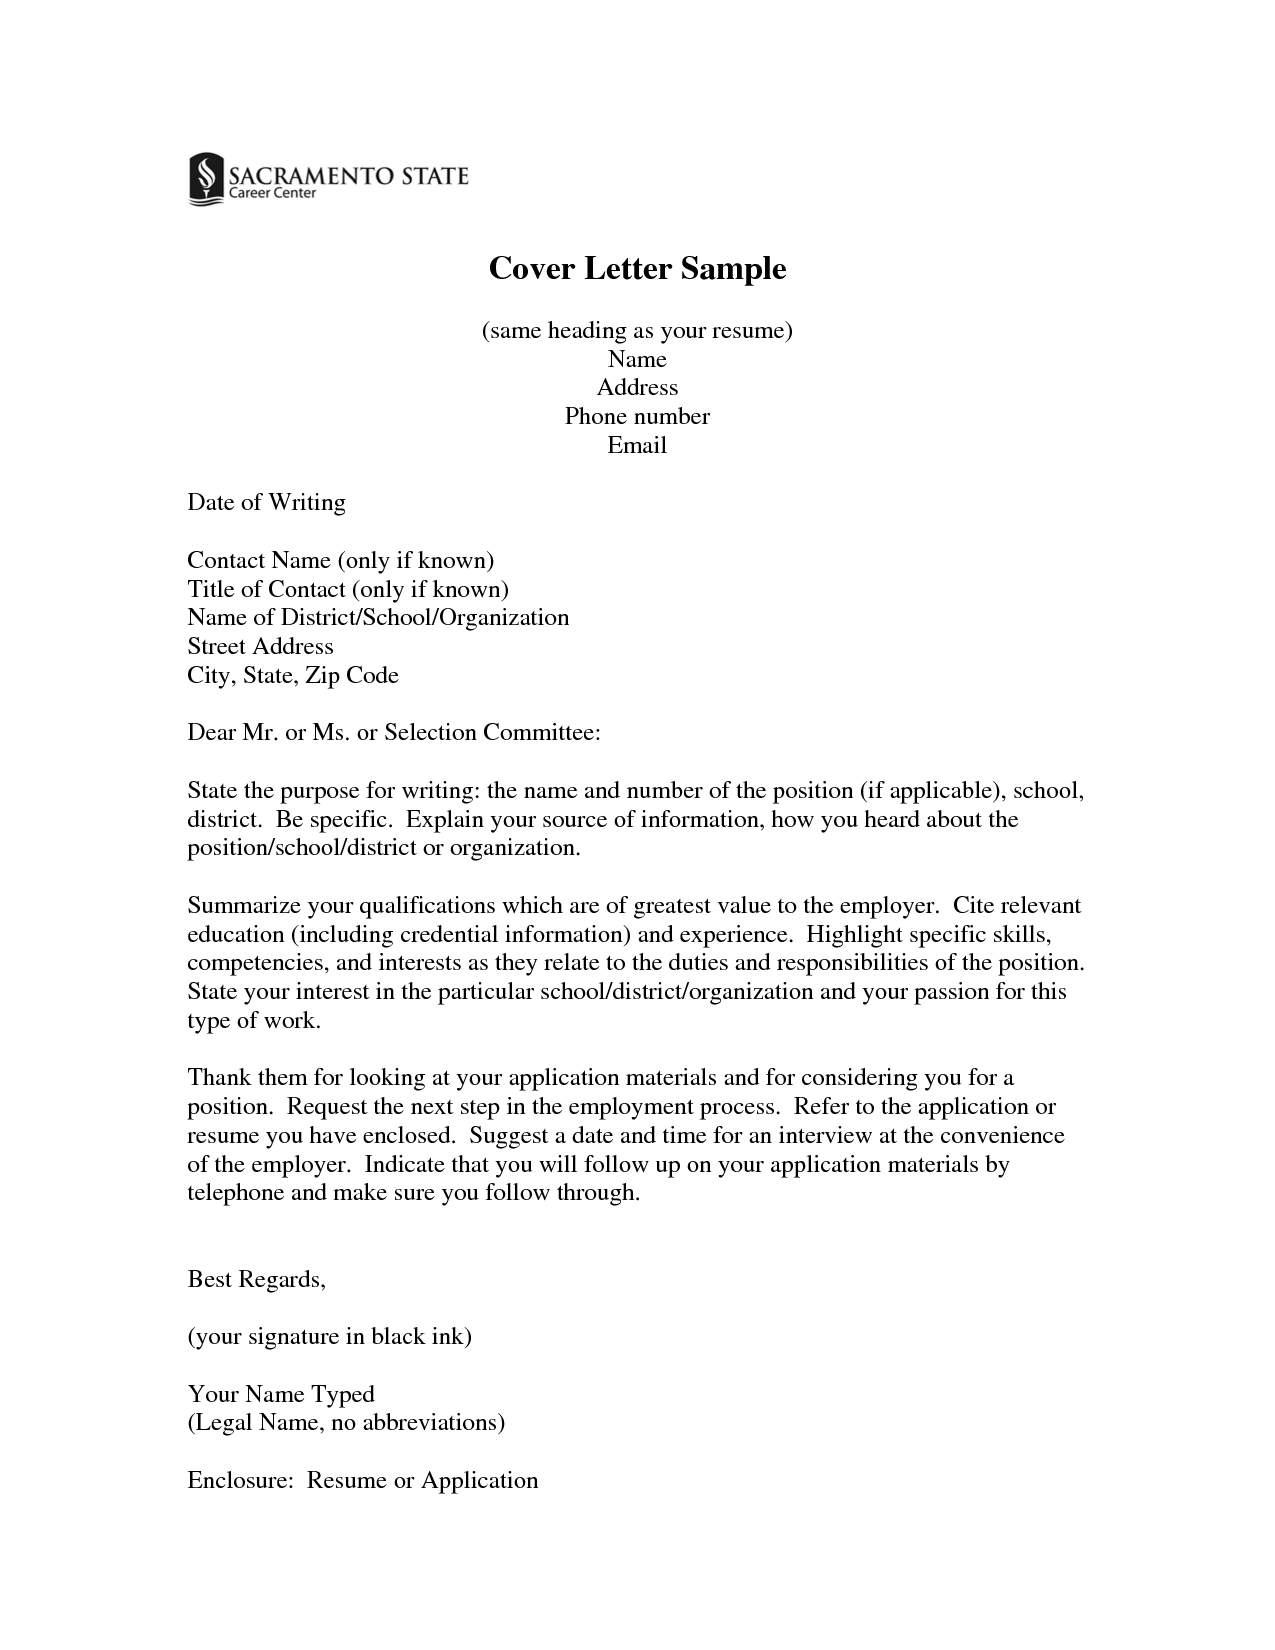 are cover letters a part of your resume Parlobuenacocinaco